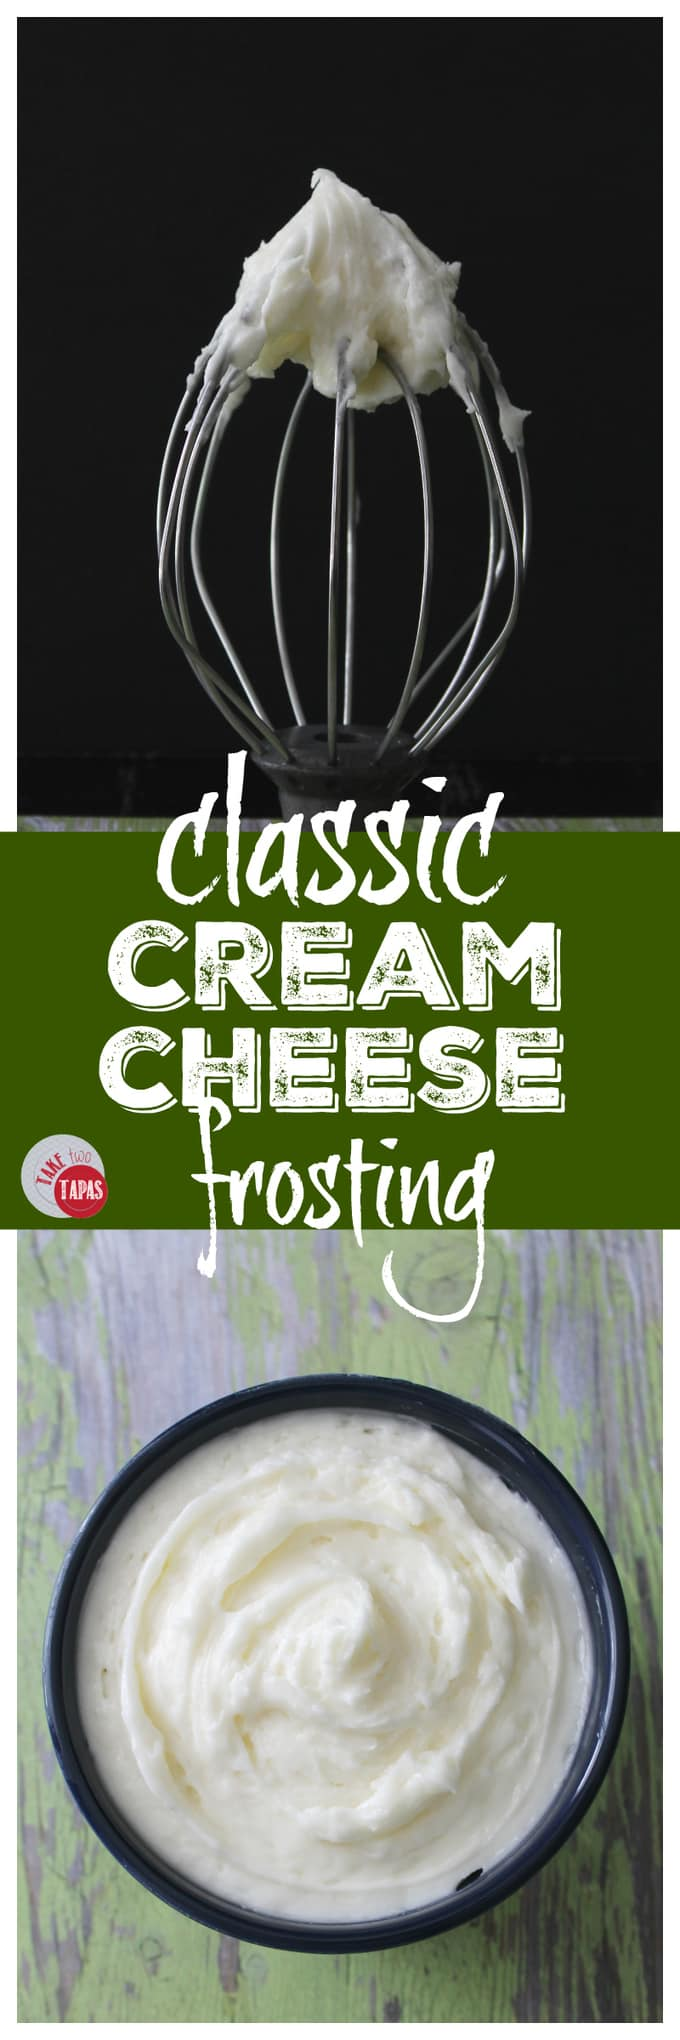 Classic Cream Cheese Frosting for all desserts | Take Two Tapas | #CreamCheeseFrosting #Frosting #Desserts #Cake #CreamCheese